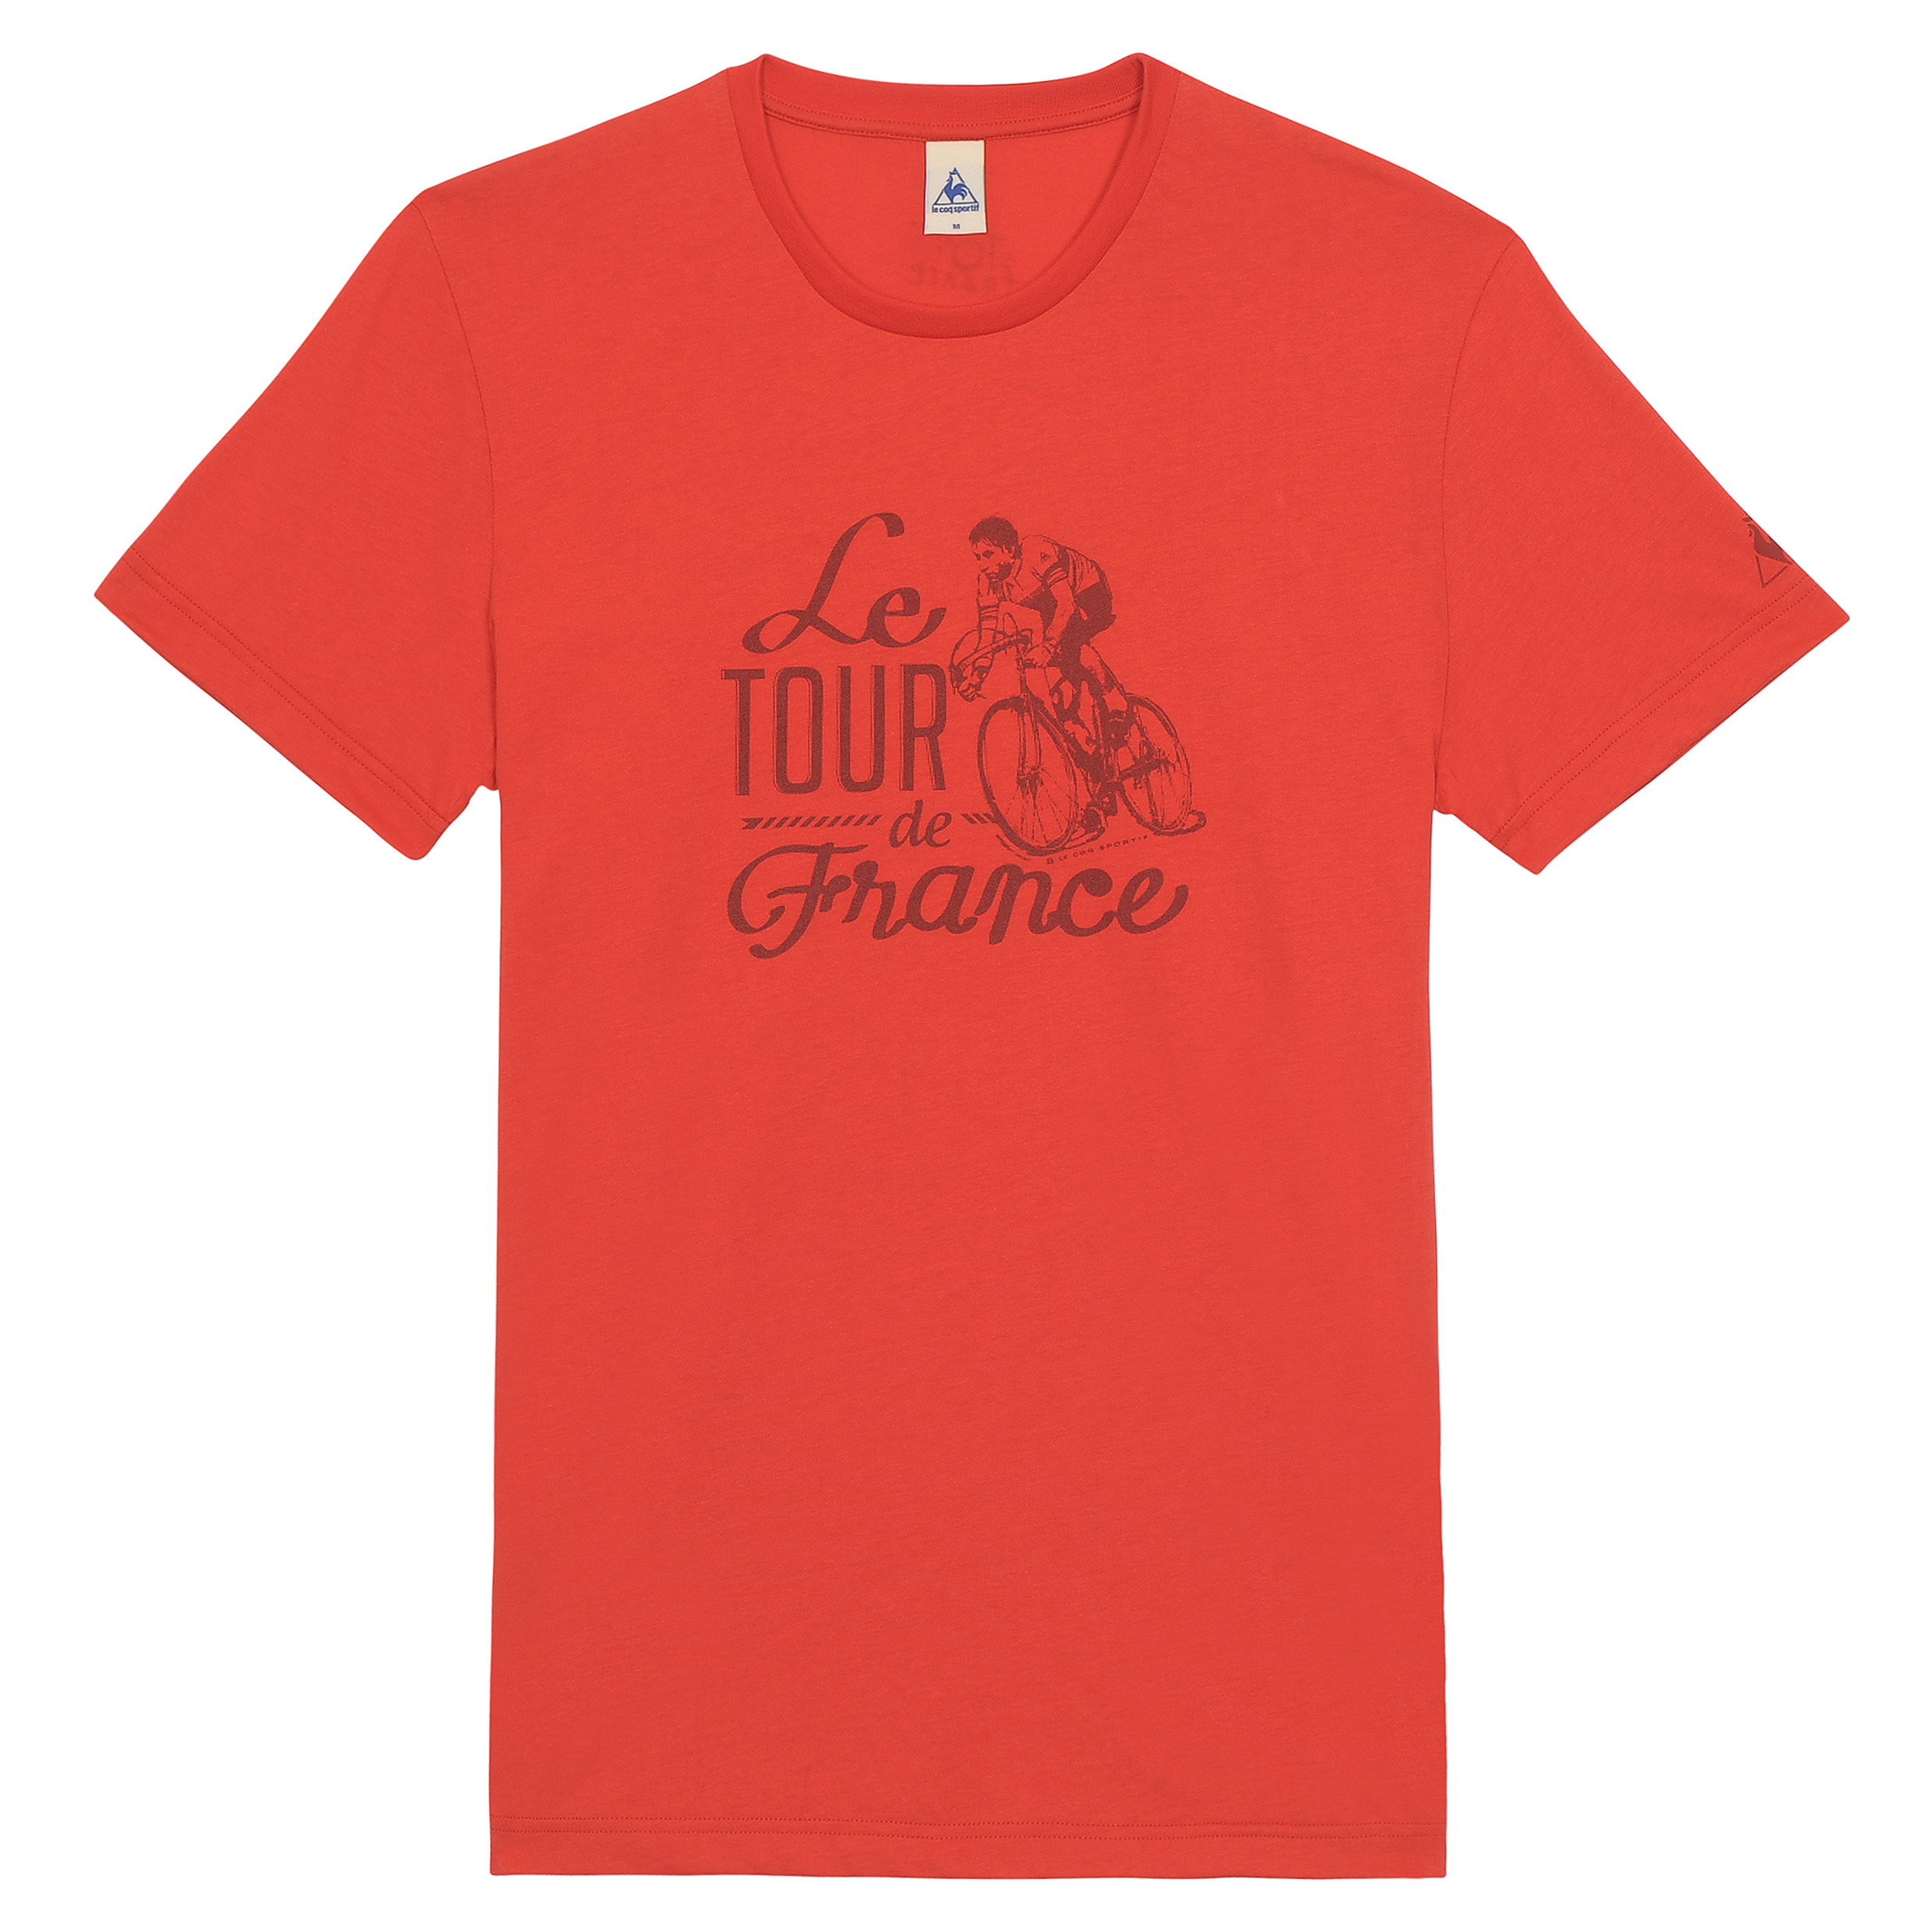 Le Tour de France Le Coq Sportif No 10 T-Shirt - Vintage Red